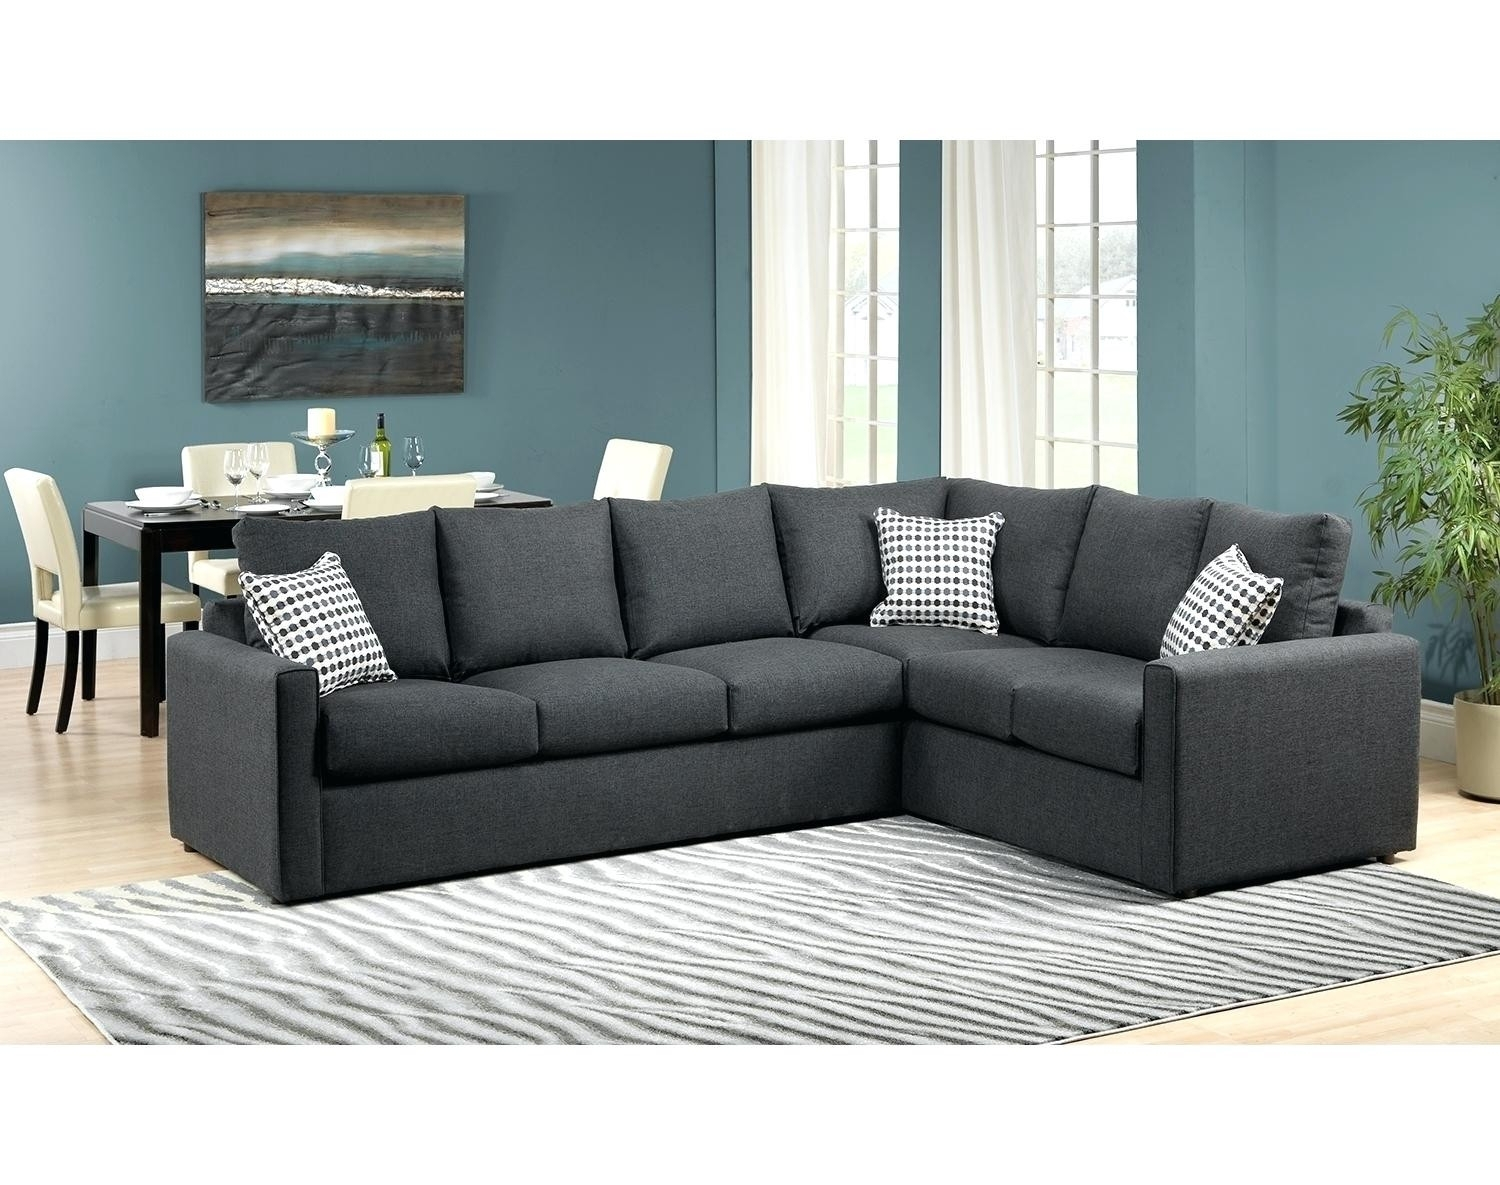 Sofa Bed Sectional Kijiji Toronto Sleeper Sale Canadav 0H The Best Pertaining To Kijiji Montreal Sectional Sofas (View 2 of 10)